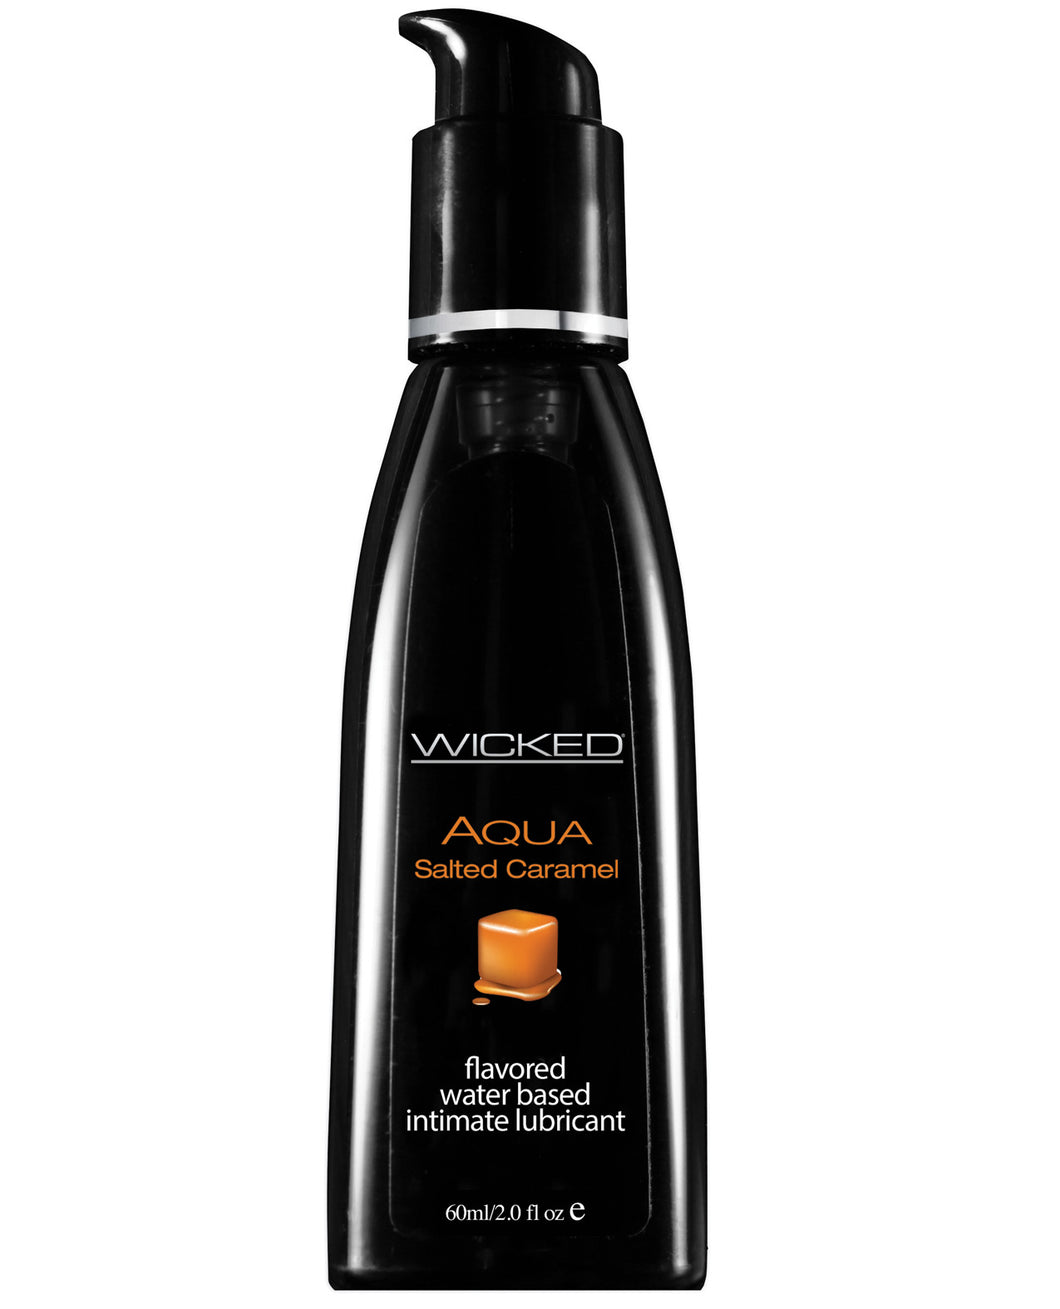 Wicked Sensual Care Aqua Waterbased Lubricant - 2 oz Salted Caramel